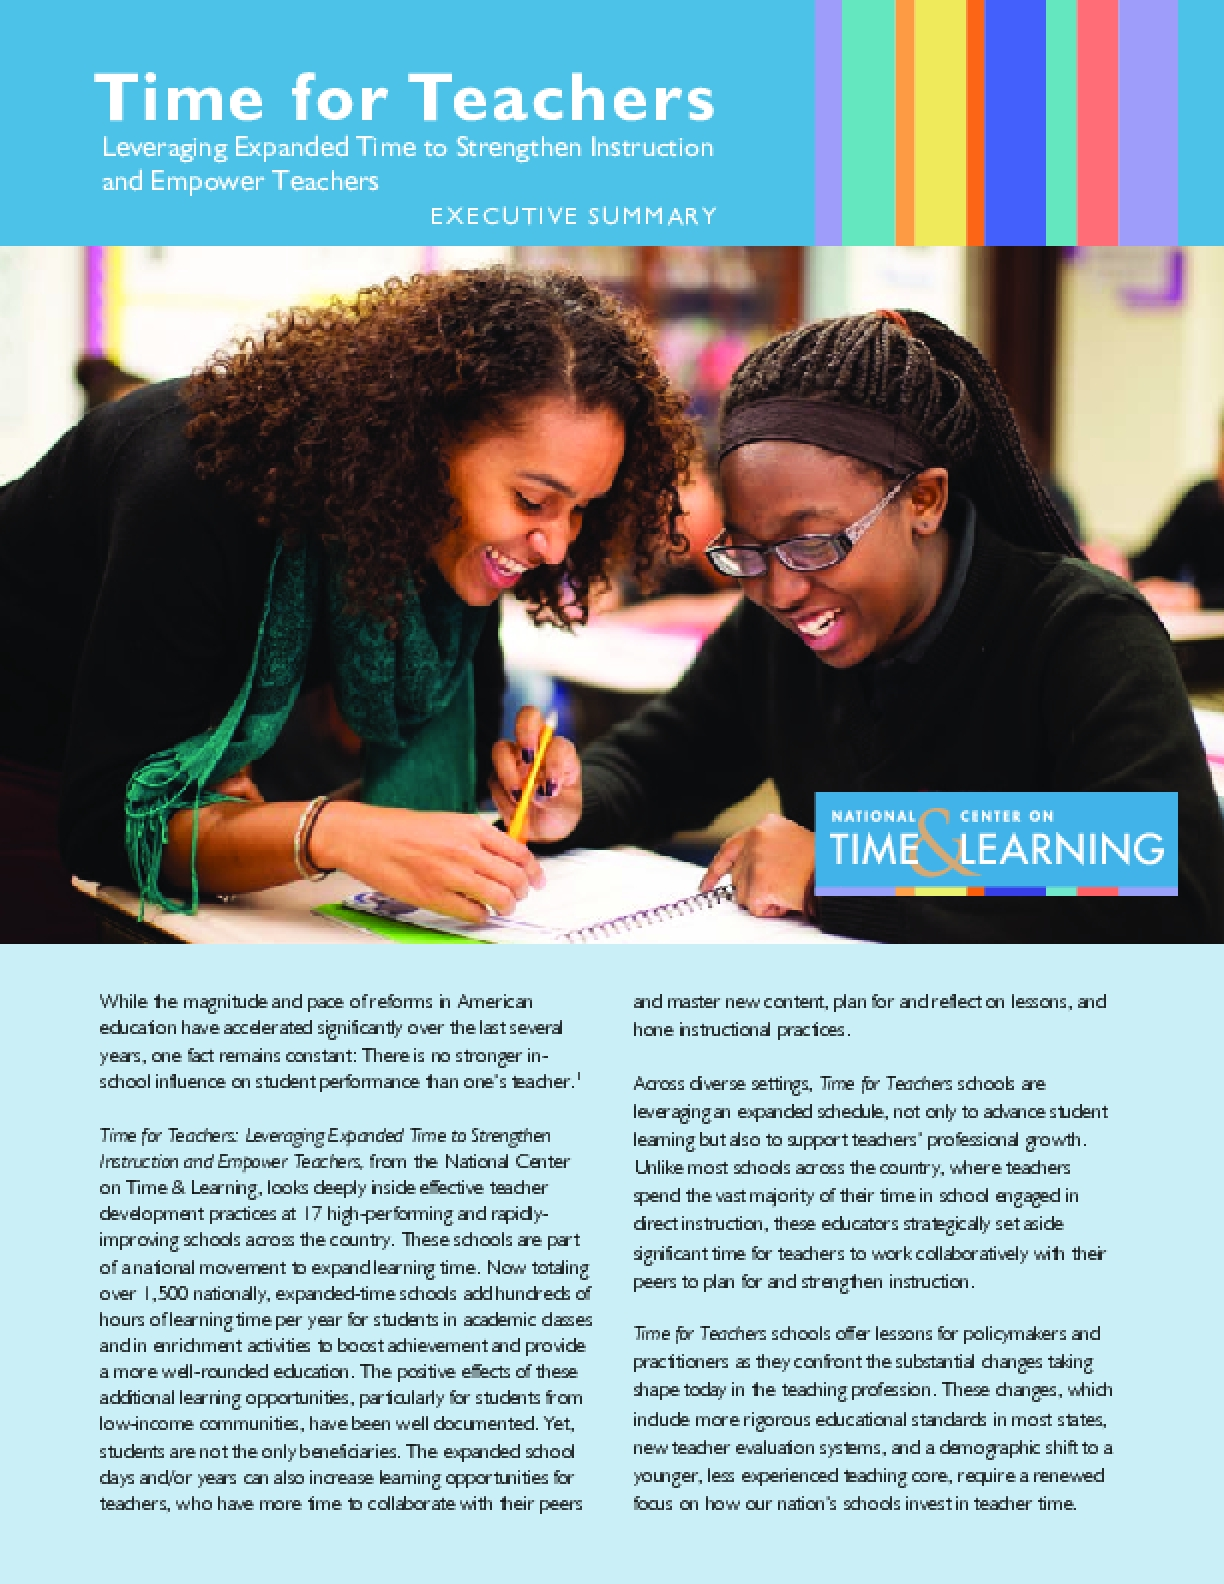 Time for Teachers: Leveraging Expanded Time to Strengthen Instruction and Empower Teachers